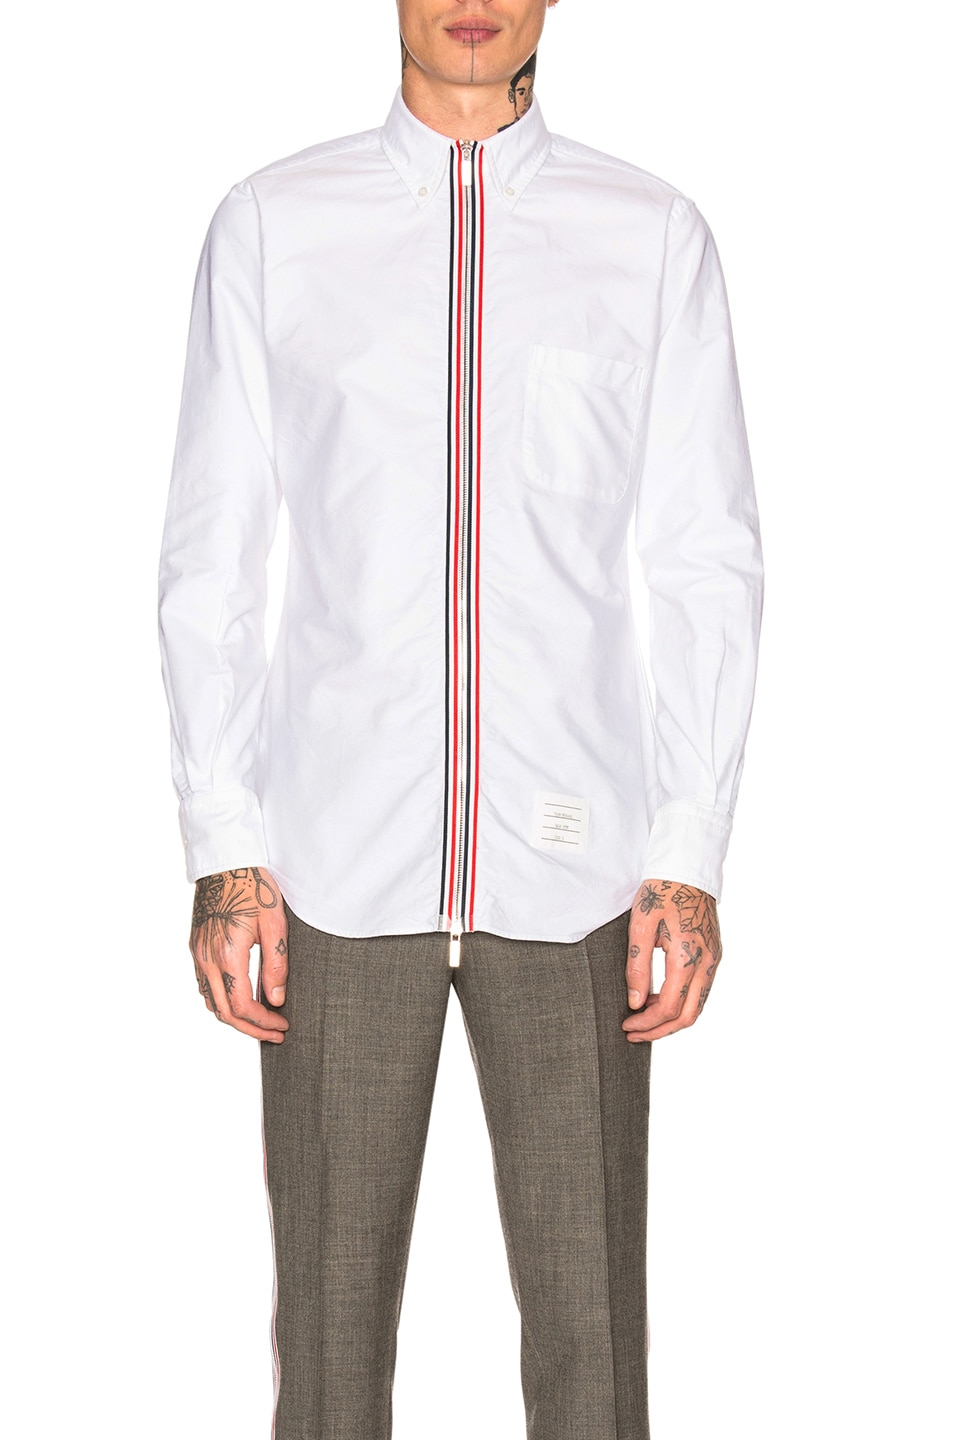 9e6687d05 Thom Browne Zip Front Classic Long Sleeve Point Collar Shirt in White